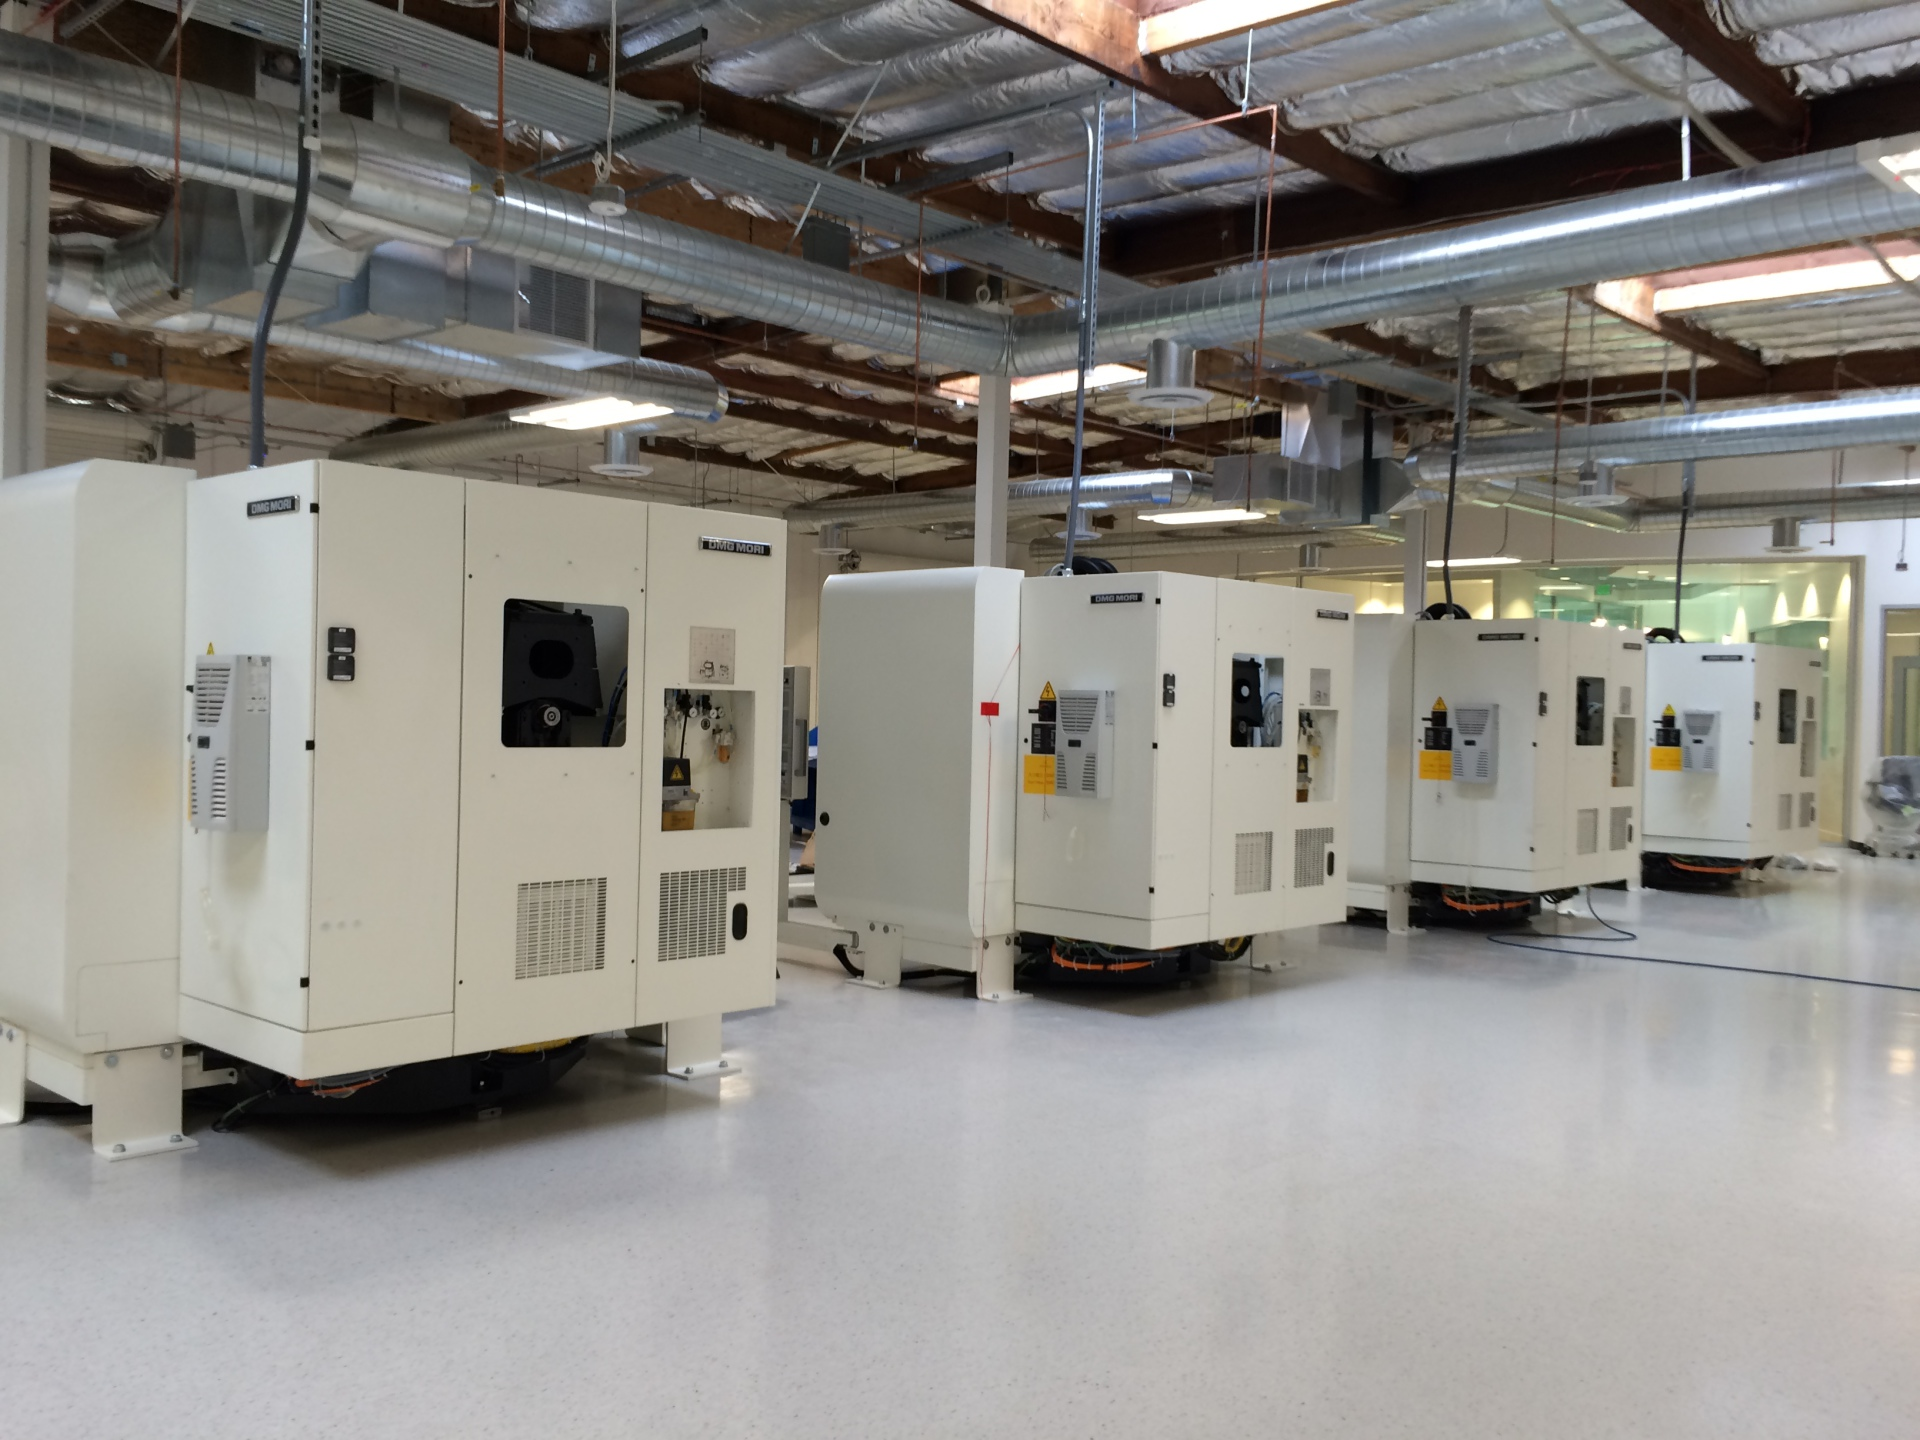 DMG Mori CNC Milling Machines